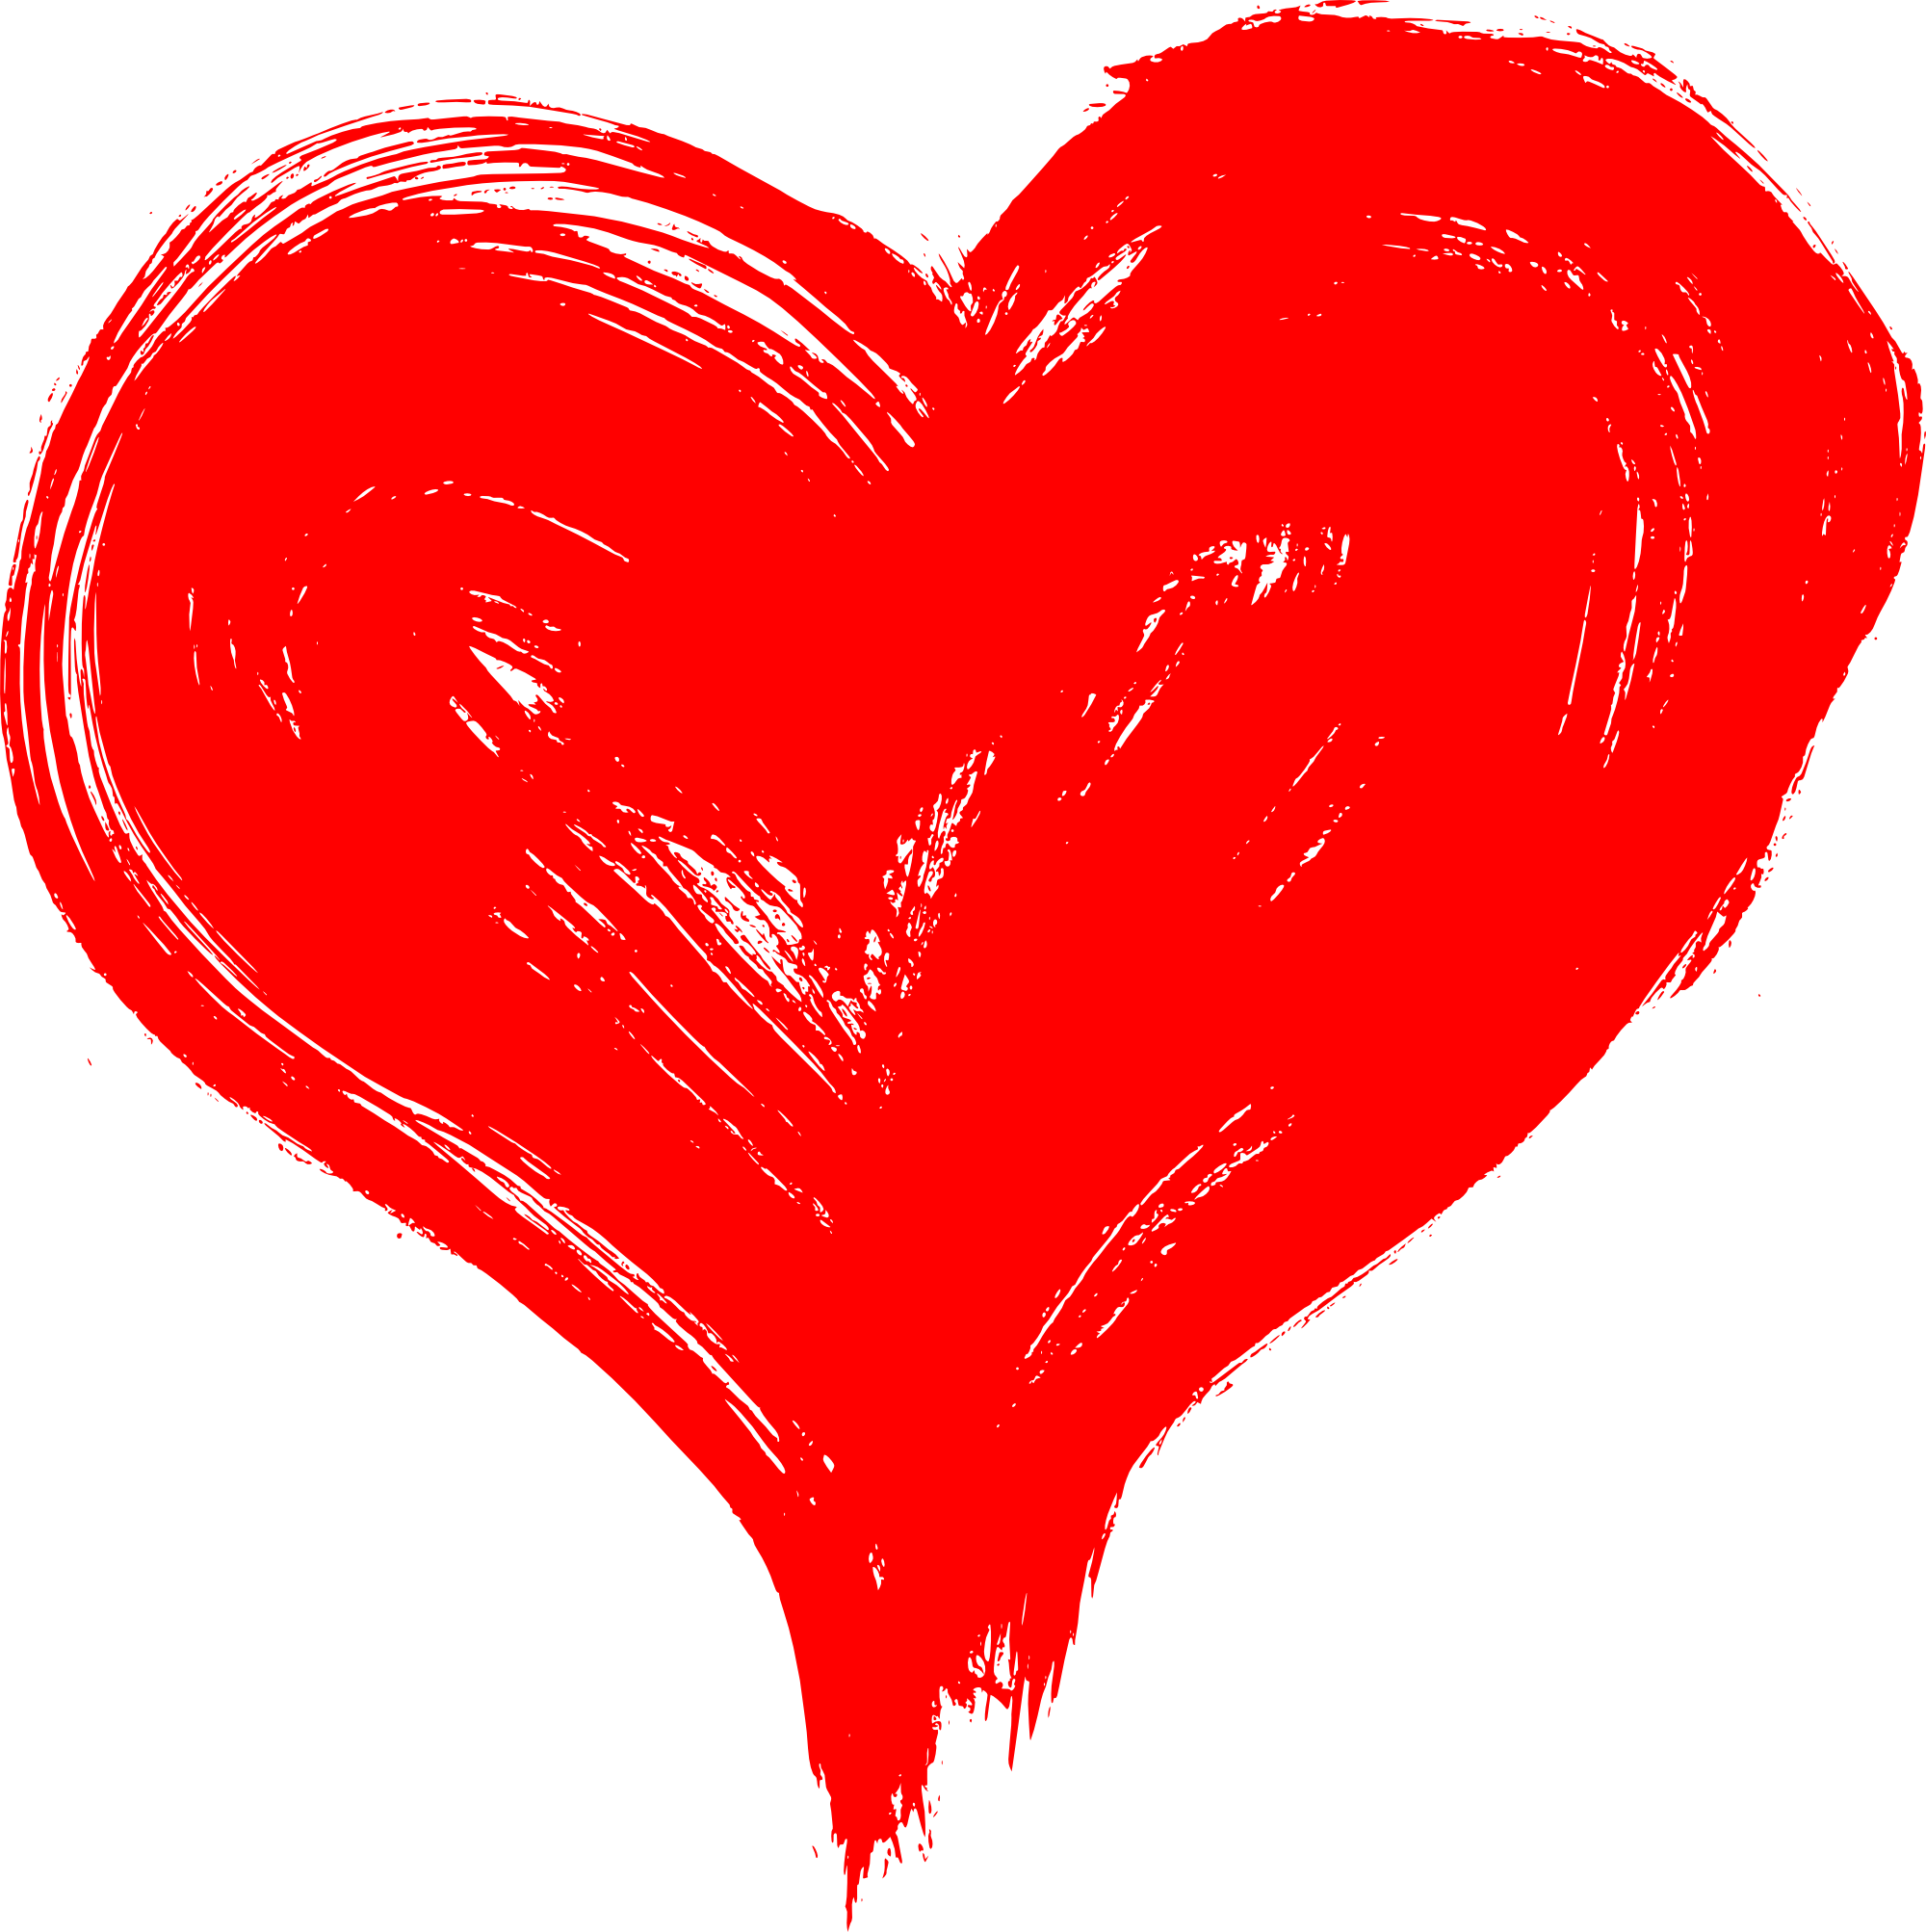 Heart art png. Hd image in our